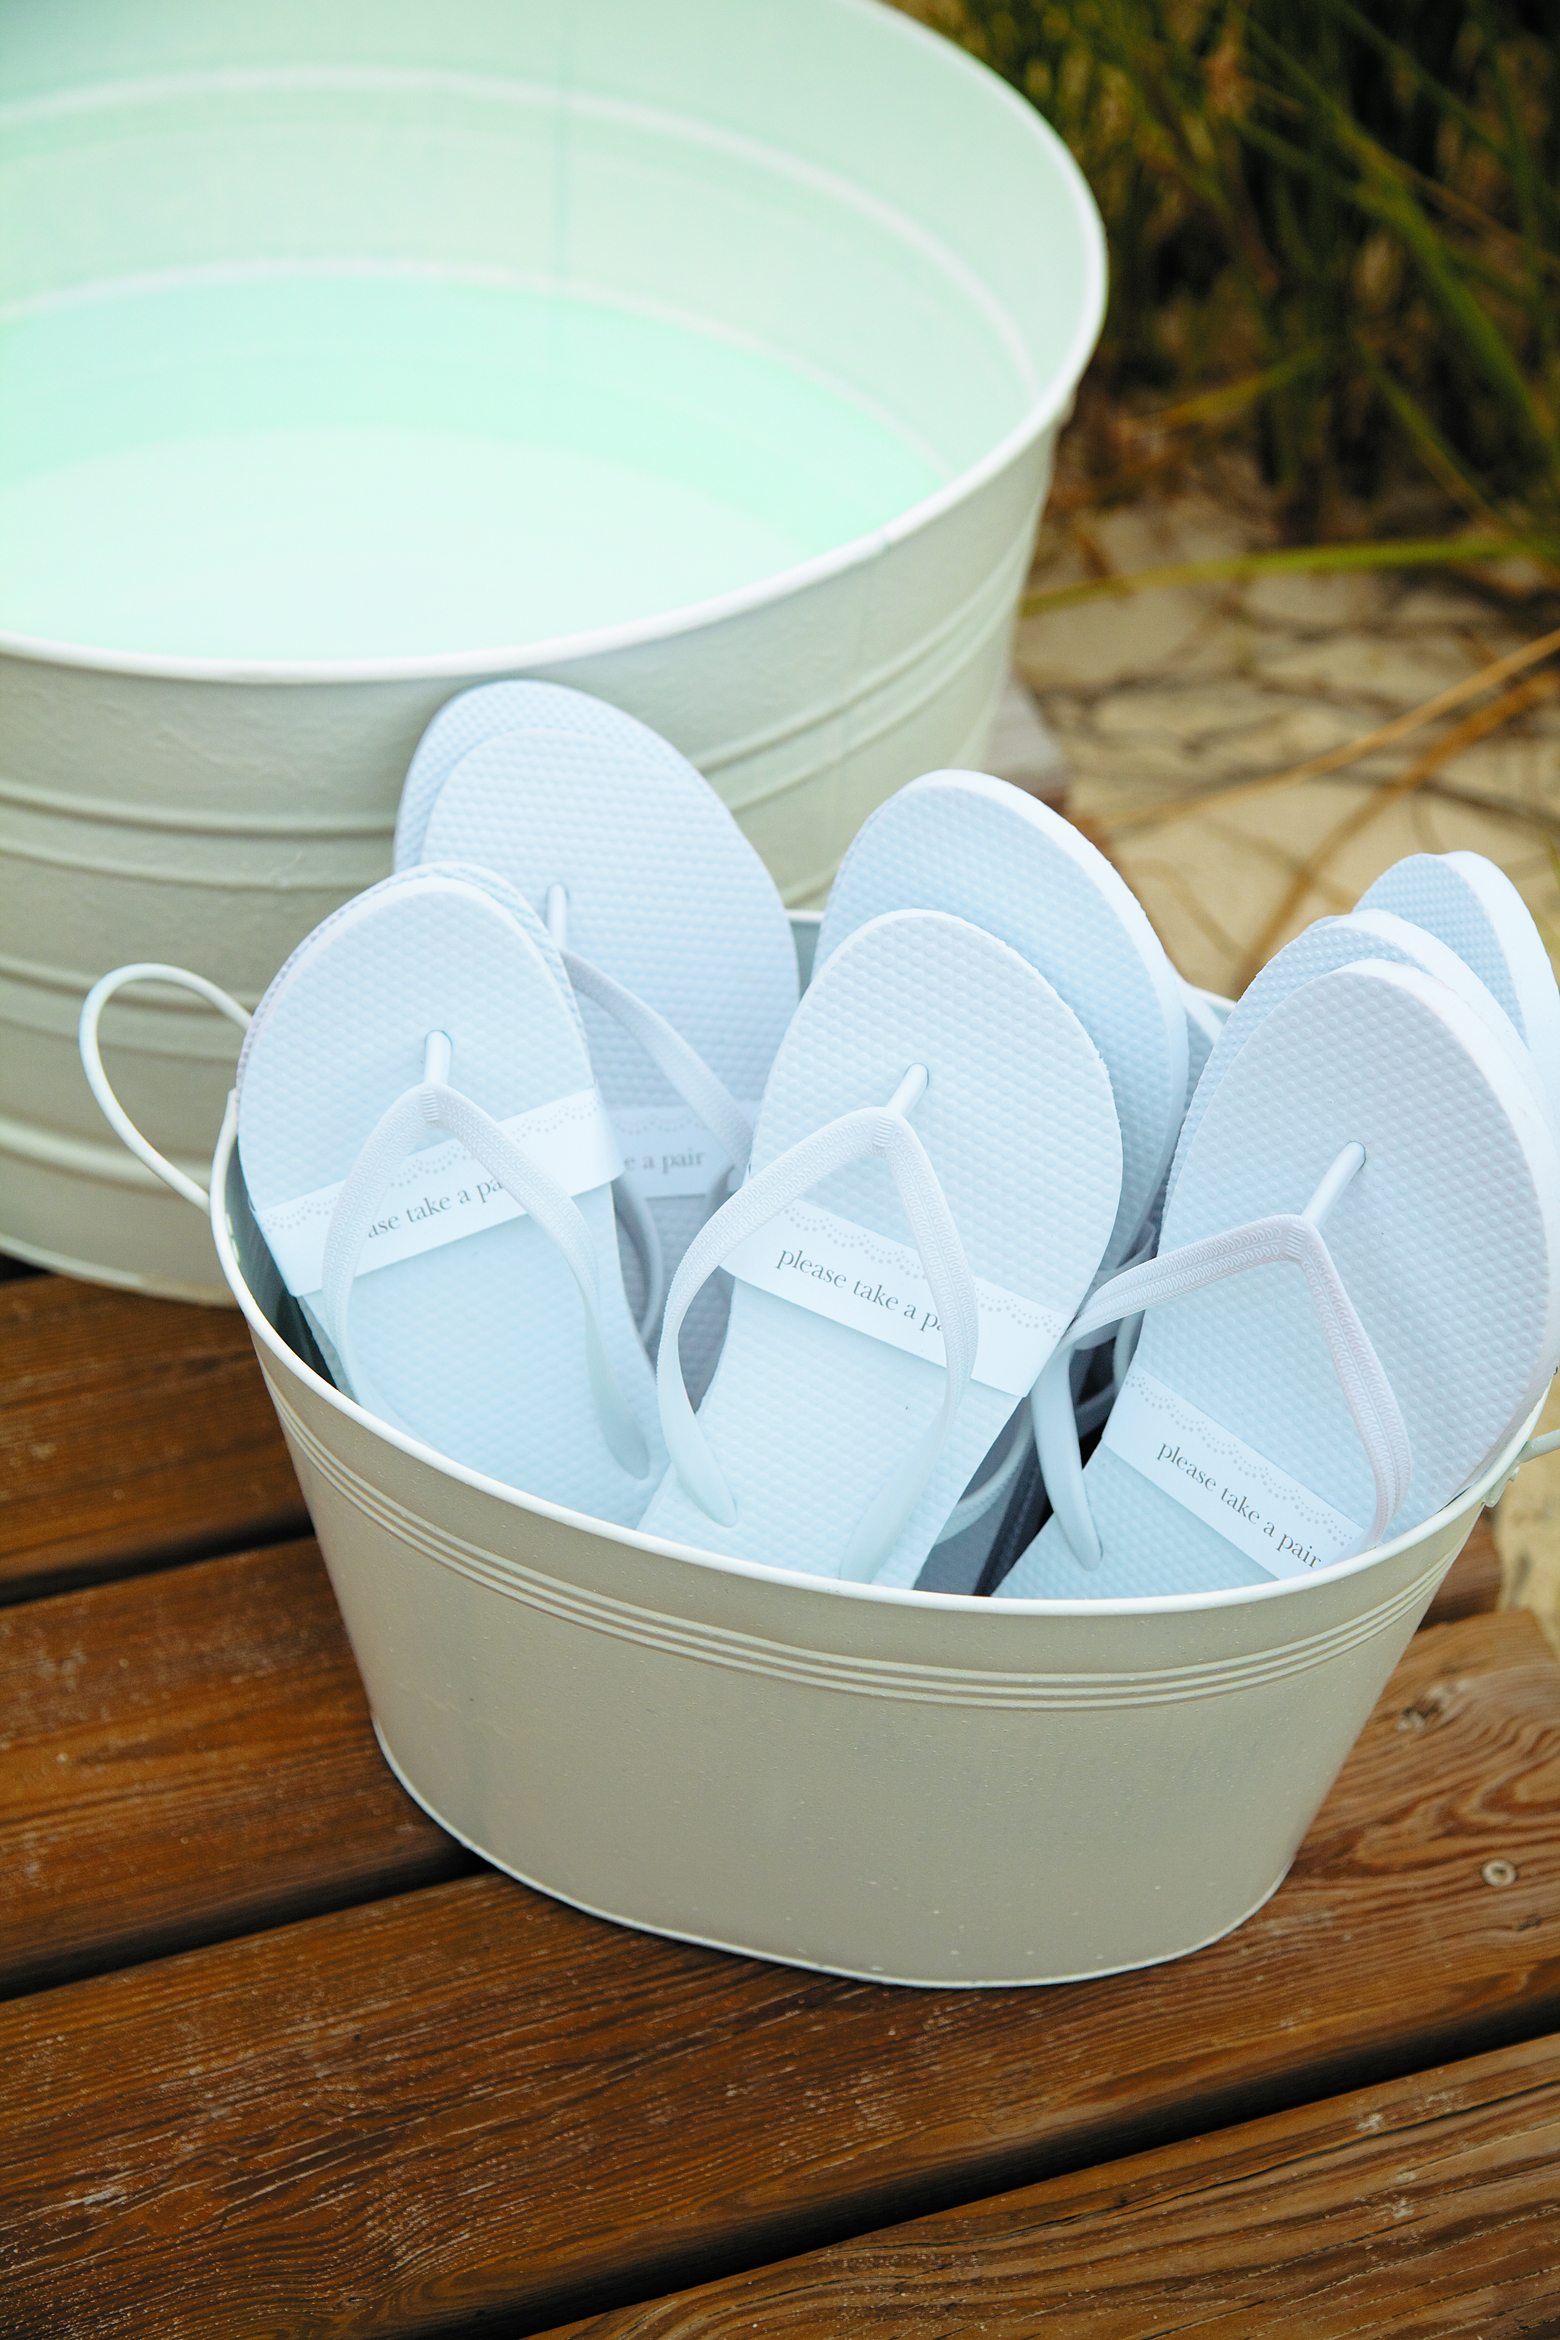 Flip Flop Station for Your Destination Wedding Guests